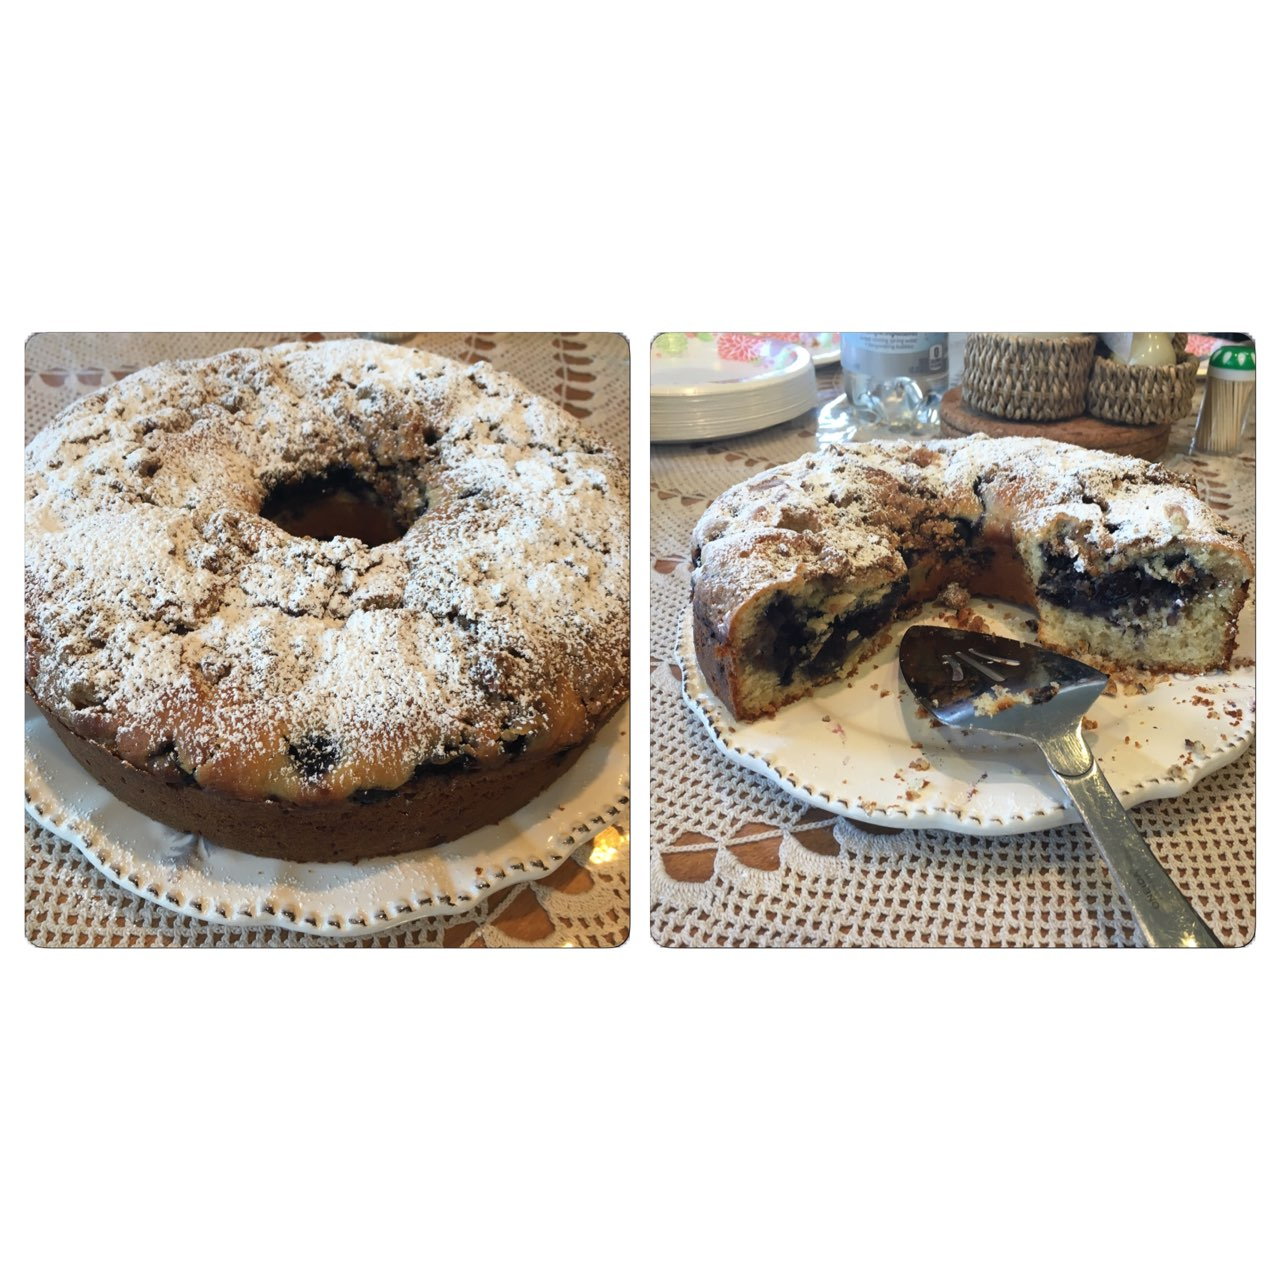 Made My Sister Her Favorite Blueberry Pecan Crunch Cake For Her